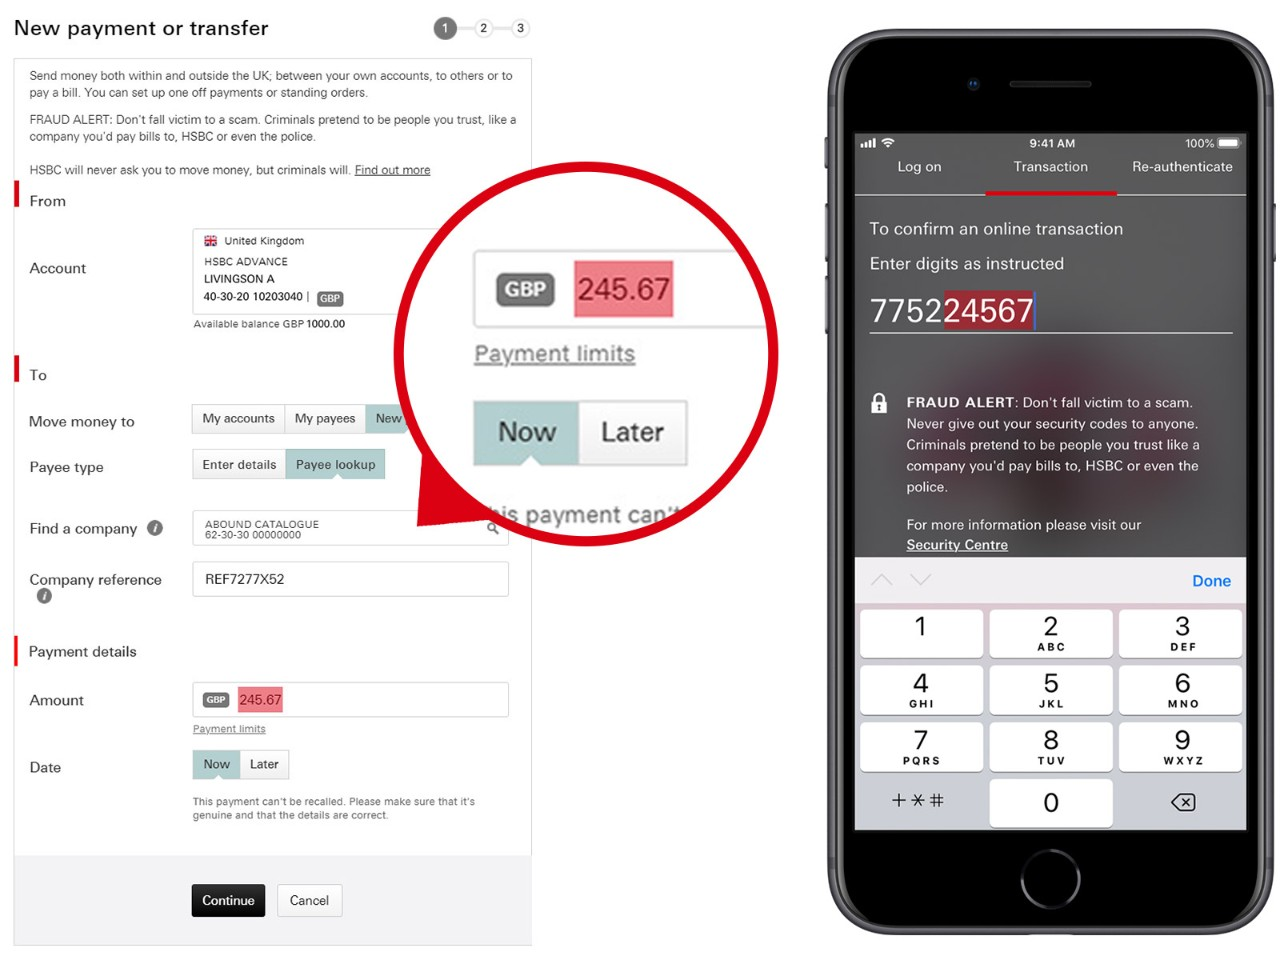 Making Payments   Contact and Support - HSBC UK